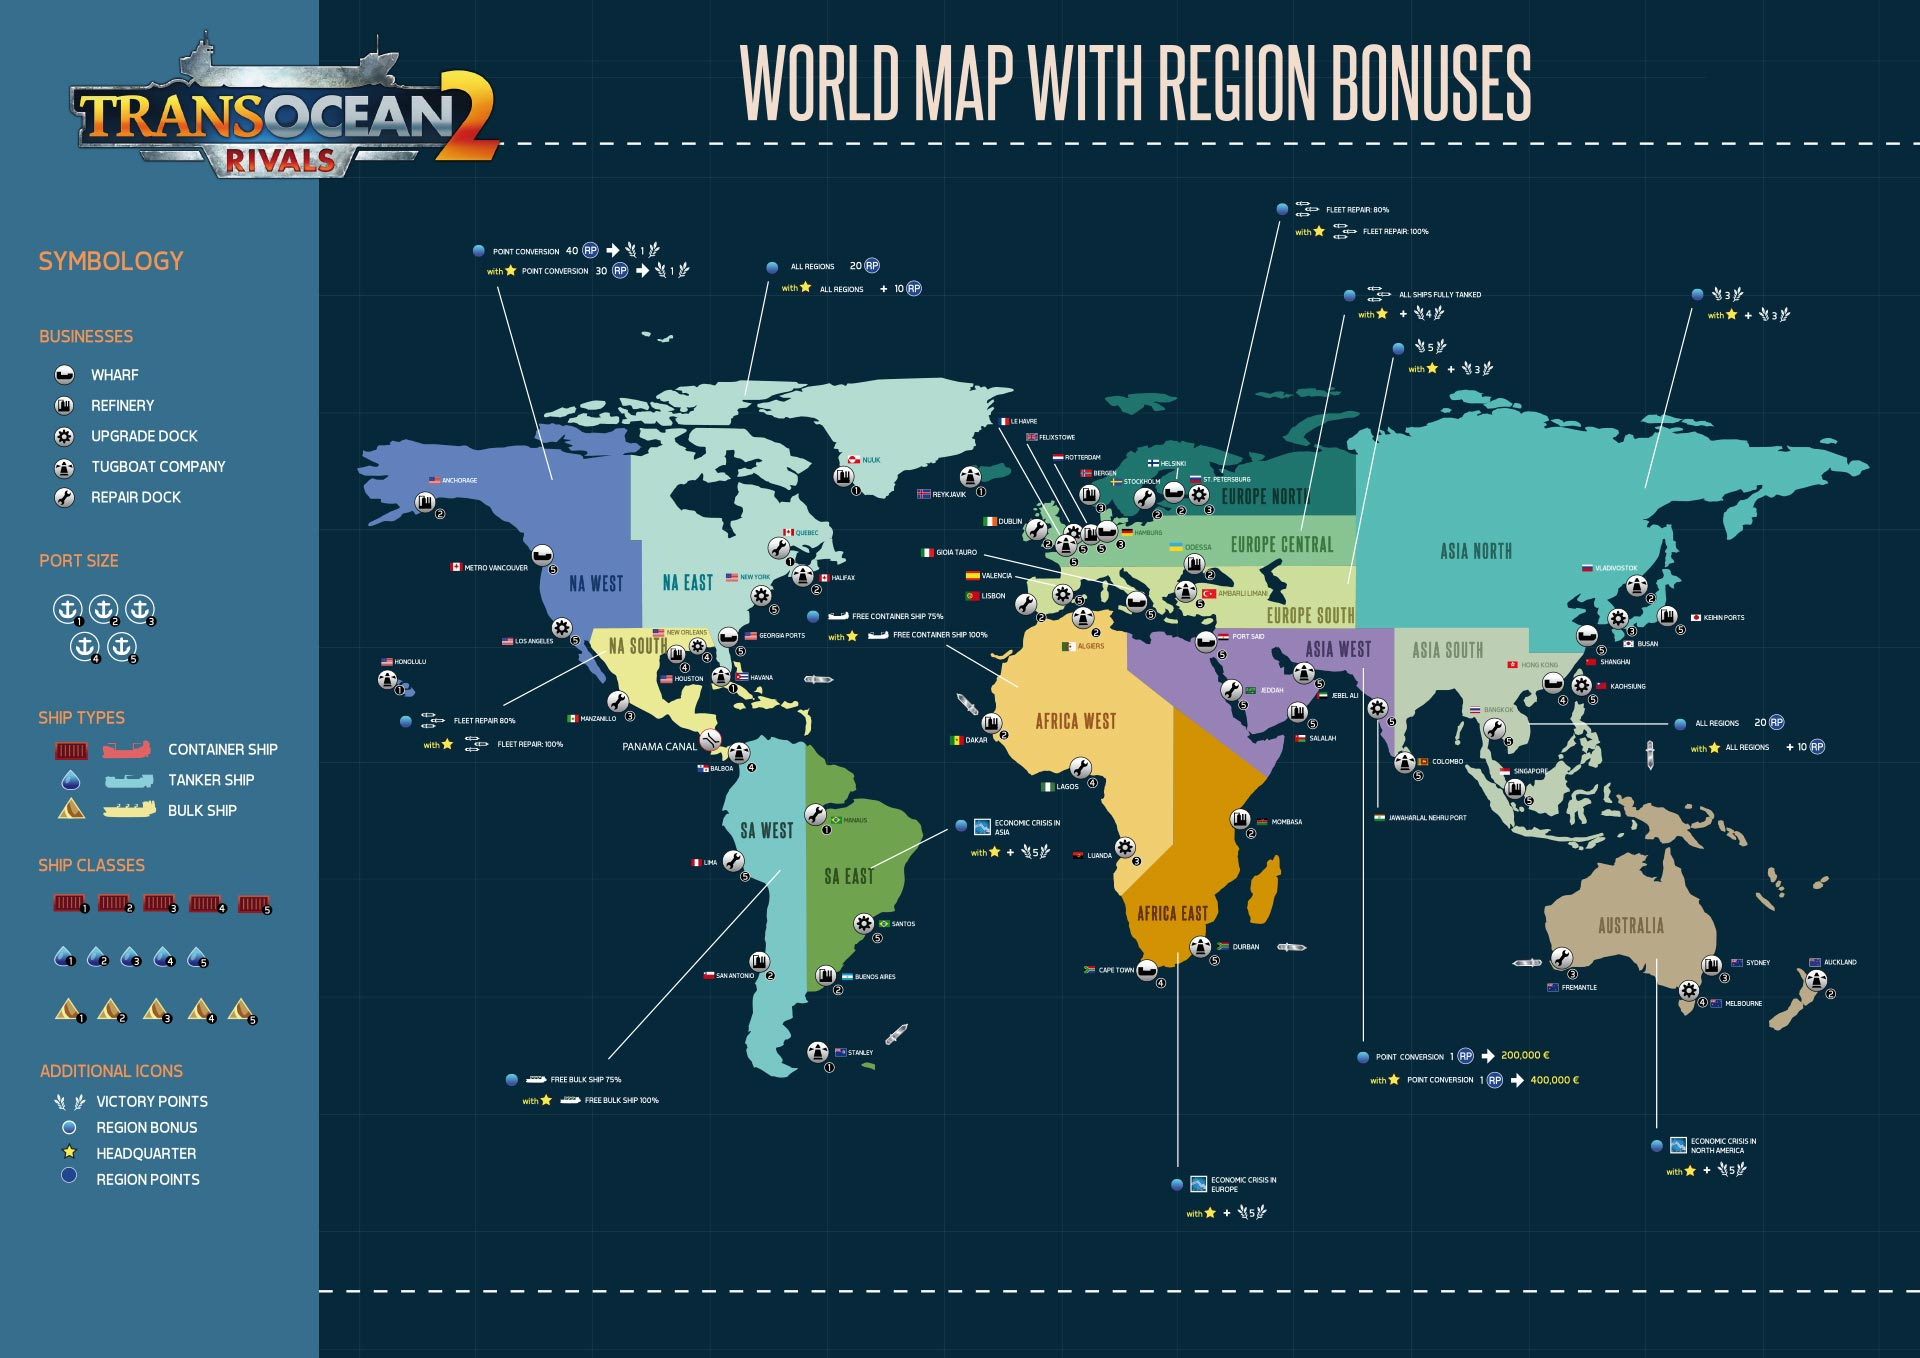 Transocean official website transocean 2 rivals download the world map gumiabroncs Choice Image